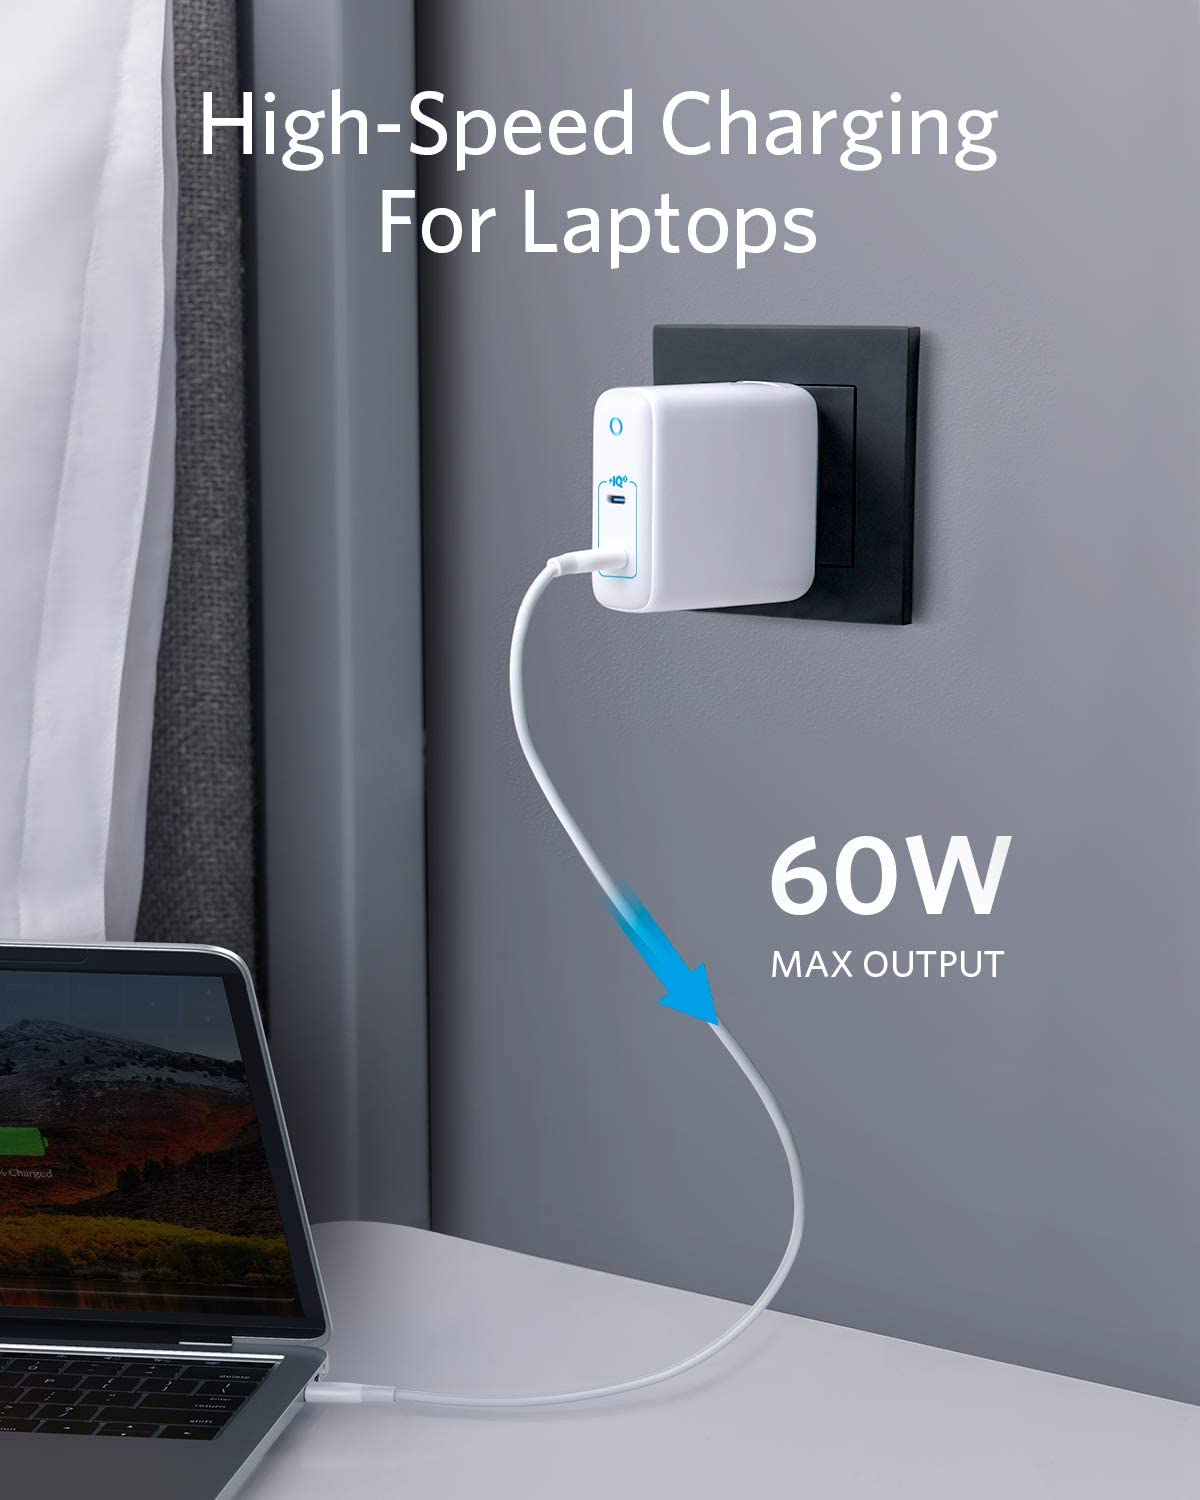 iPad Pro iPhone USB C Charger Galaxy and More Anker 60W GaN /& PIQ 3.0 2-Port Type-C Charger with Intelligent Power Allocation US//UK//EU Plug for Travel for MacBook PowerPort III 2-Port 60W